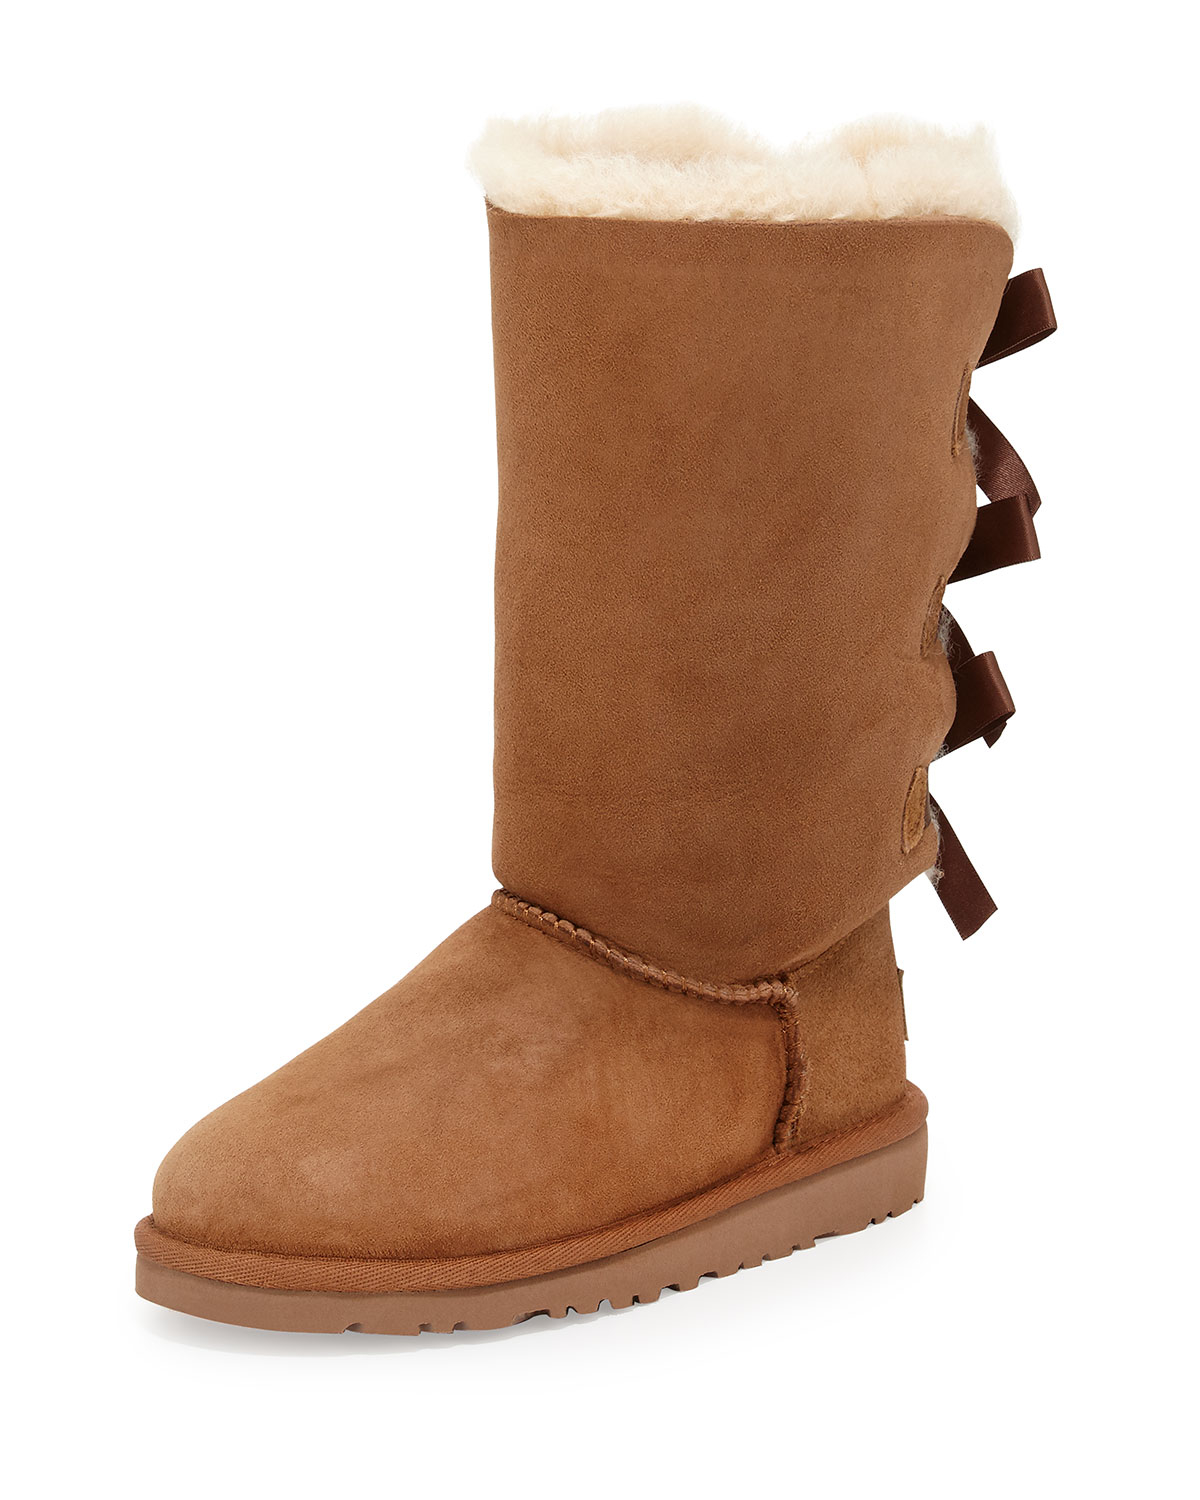 lyst ugg bailey bow detailed sheepskin boots in brown. Black Bedroom Furniture Sets. Home Design Ideas